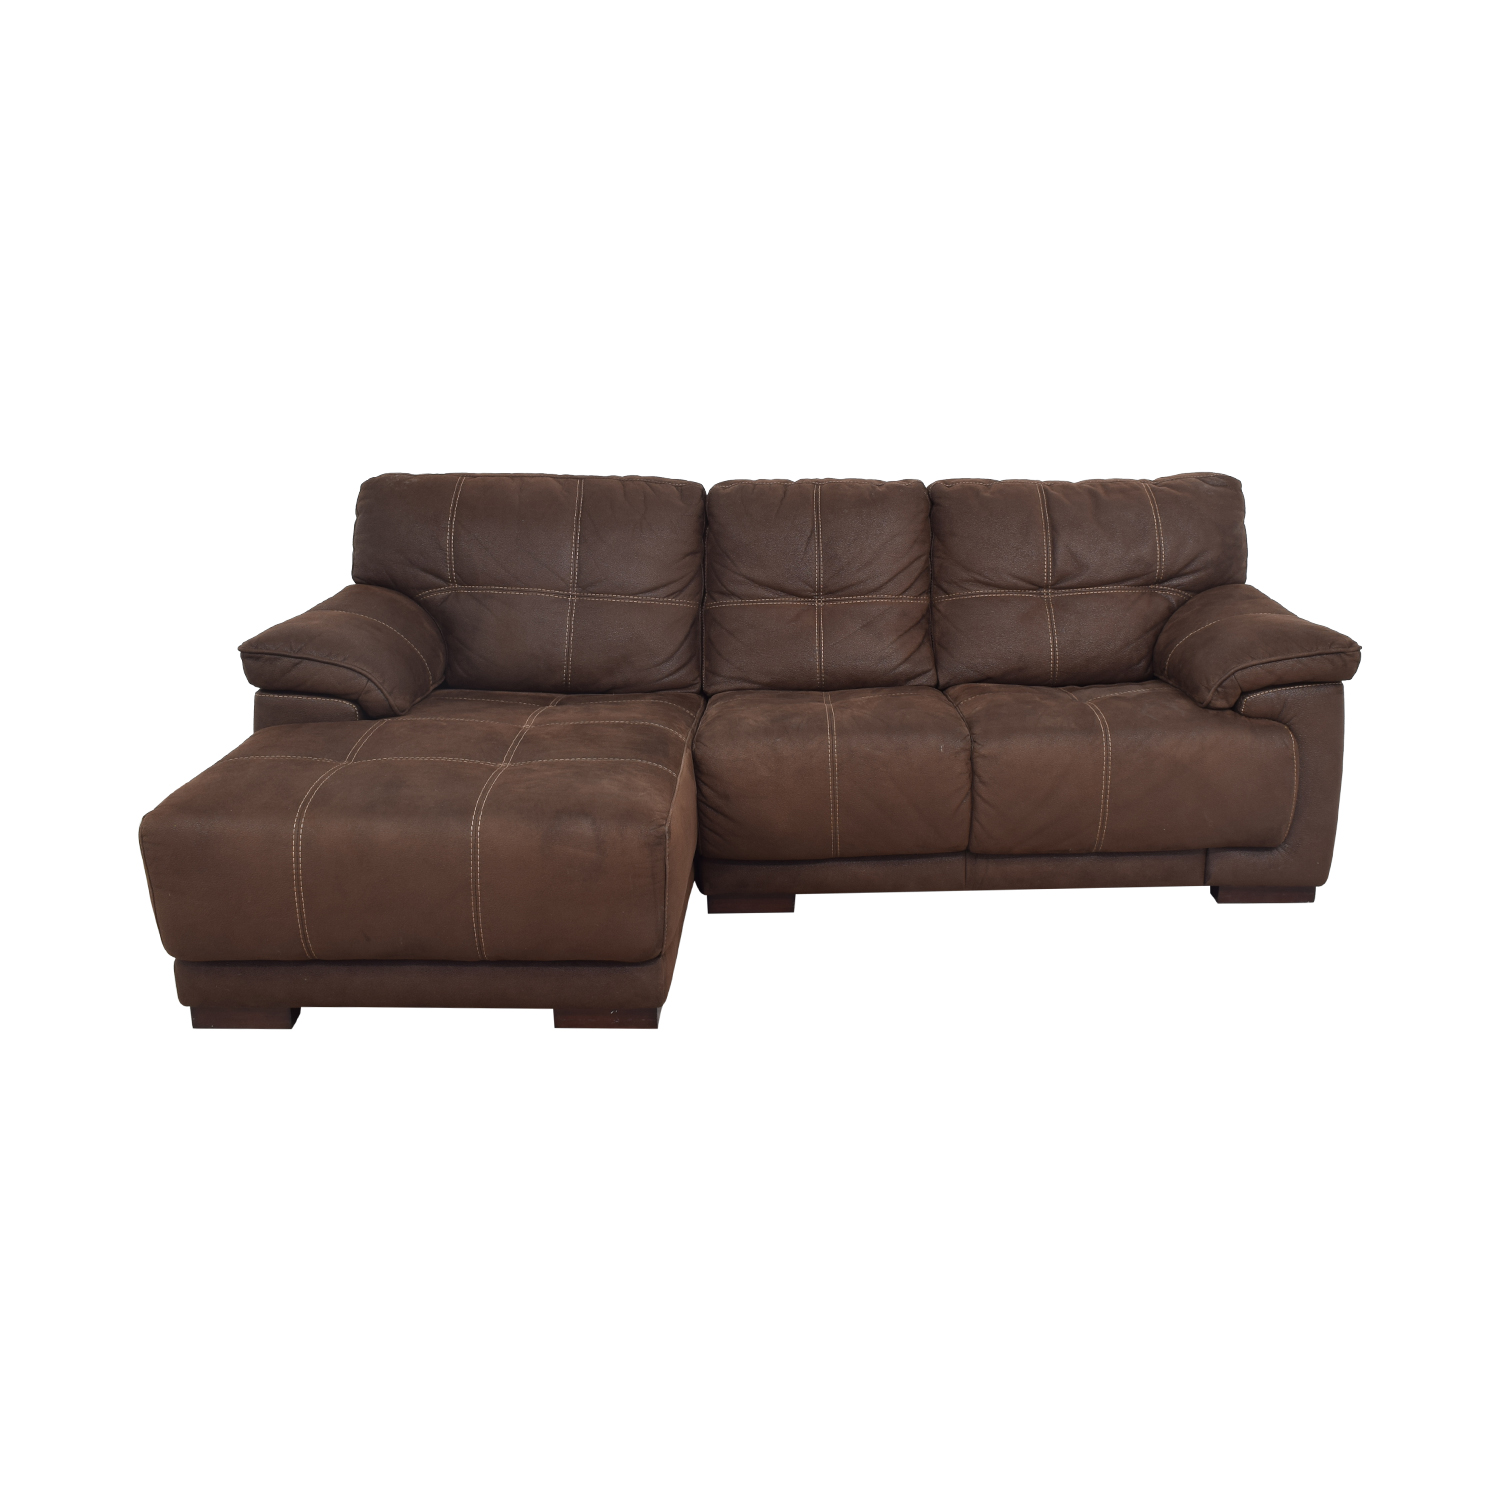 low priced 83d24 6821c 65% OFF - Raymour & Flanigan Raymour & Flanigan Microfiber Sectional Sofa /  Sofas